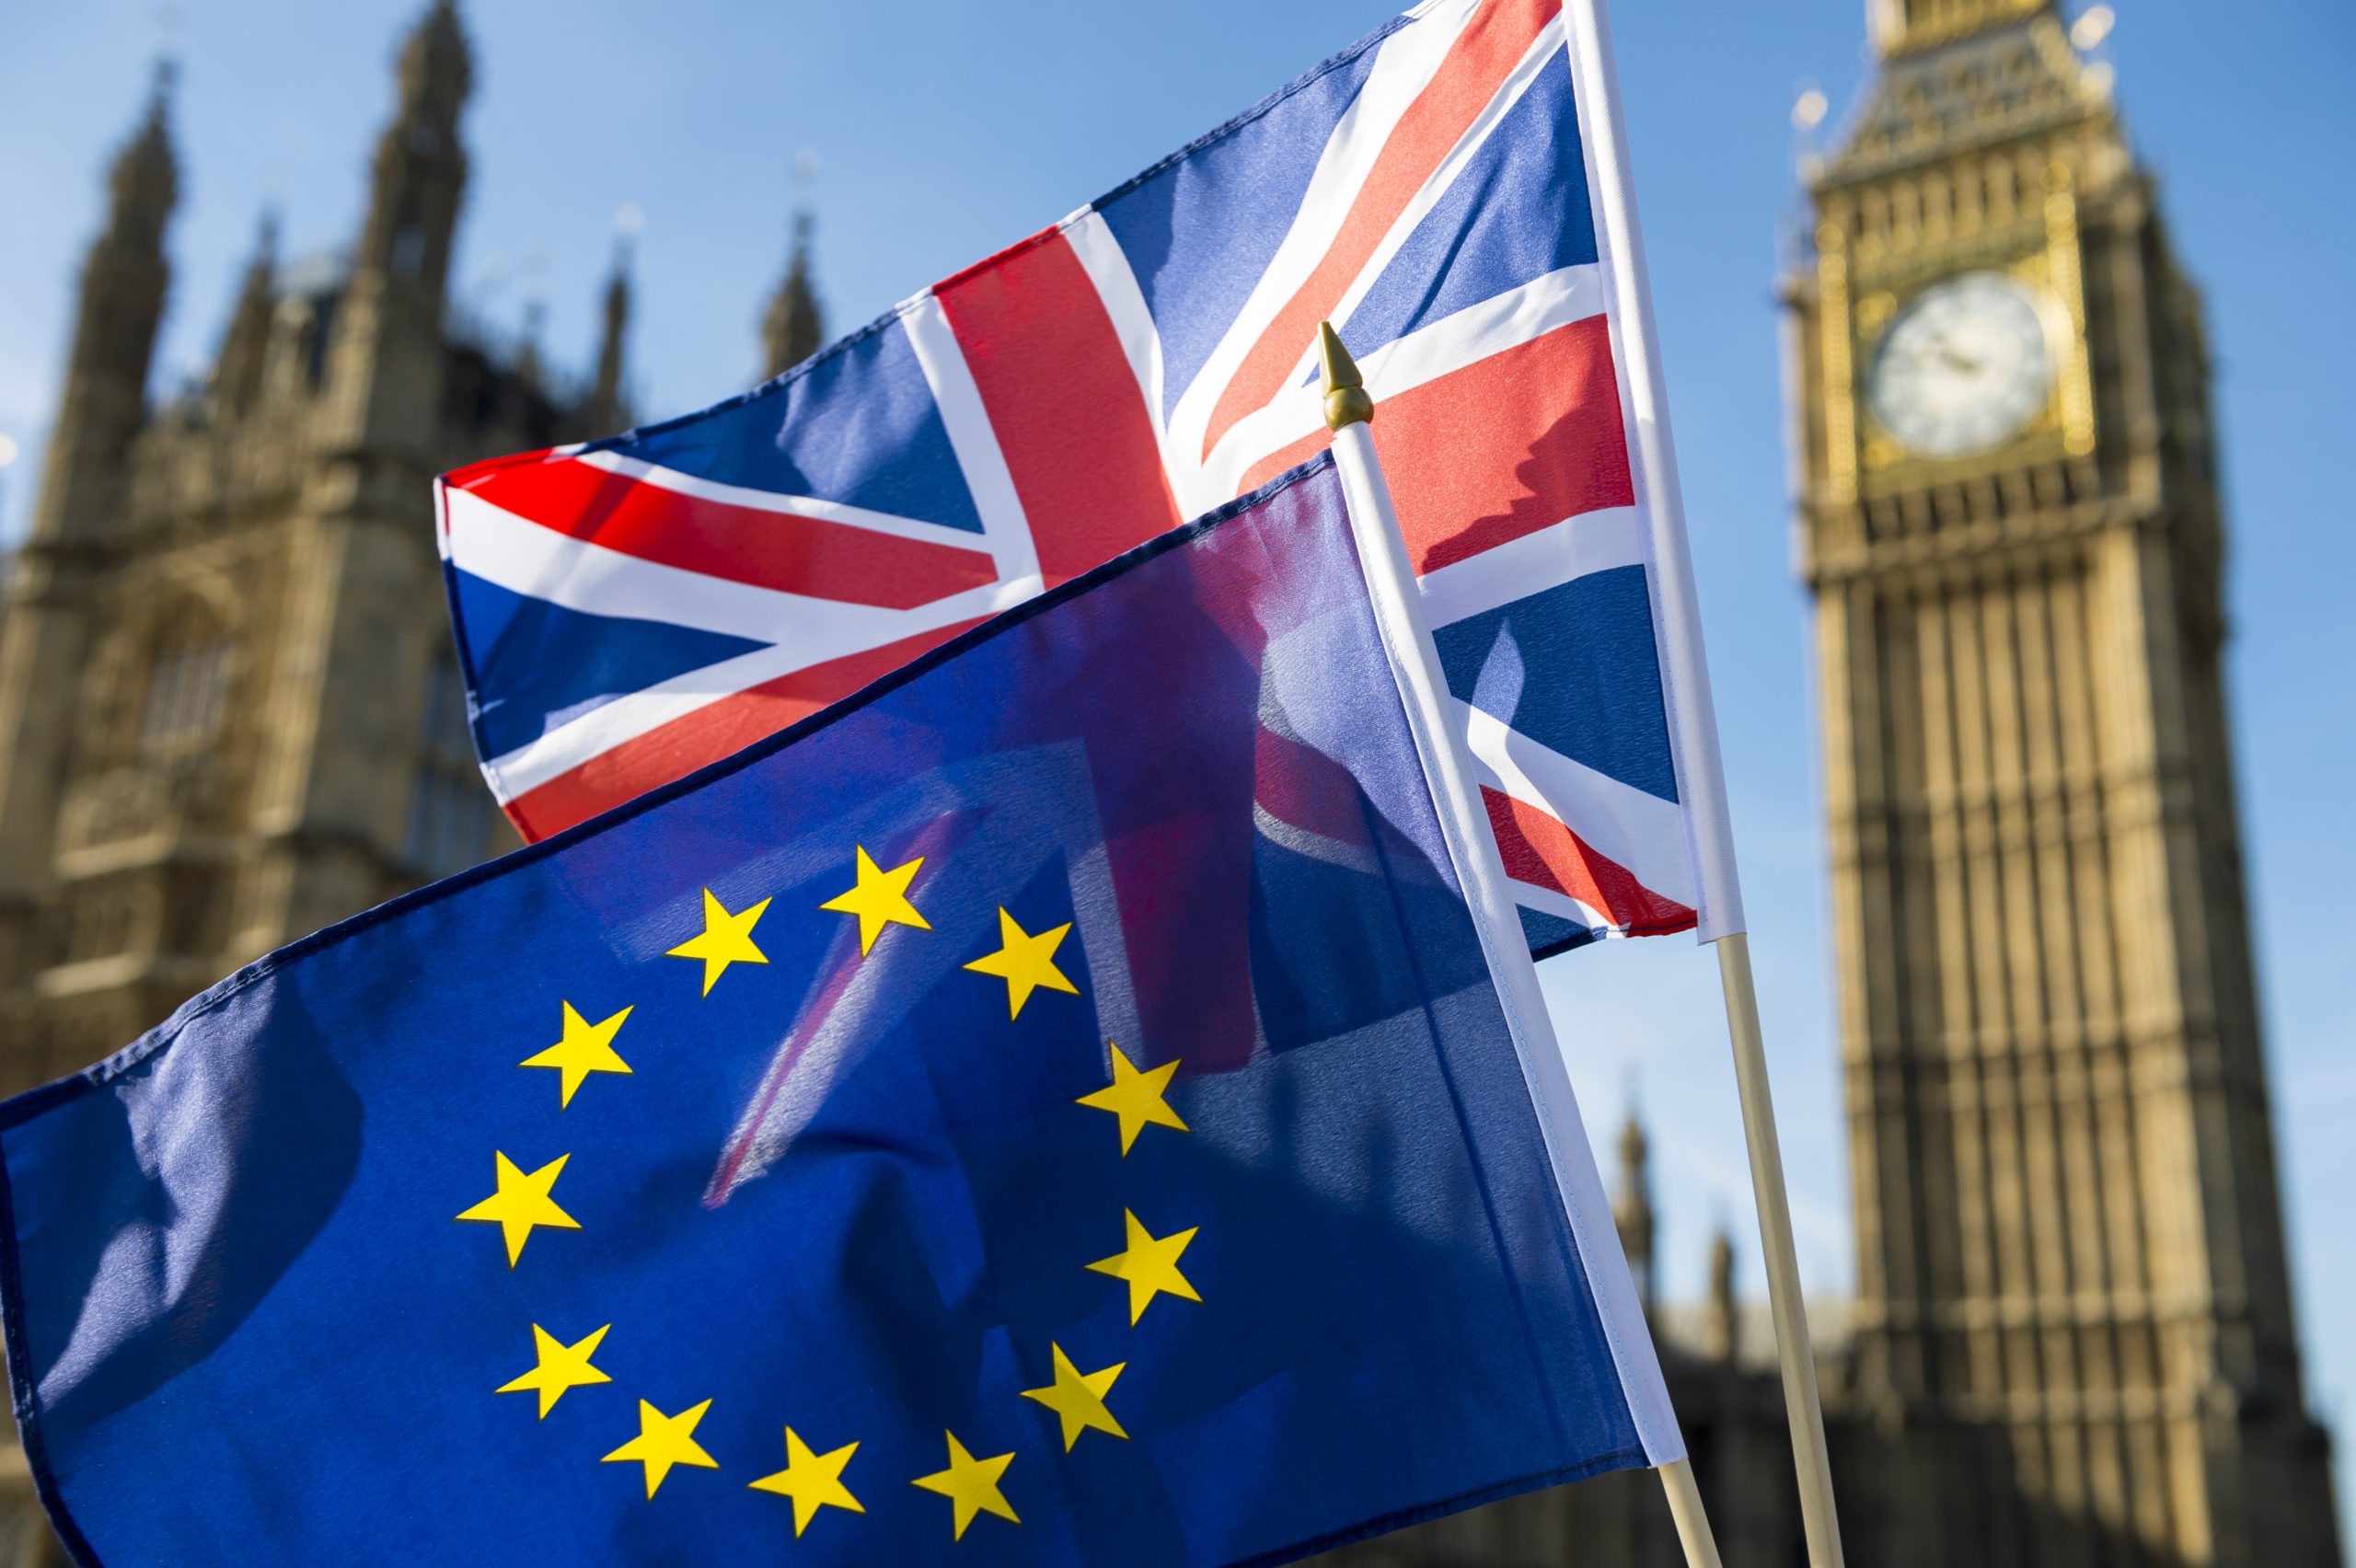 1 in 3 businesses still unclear on implications of Brexit